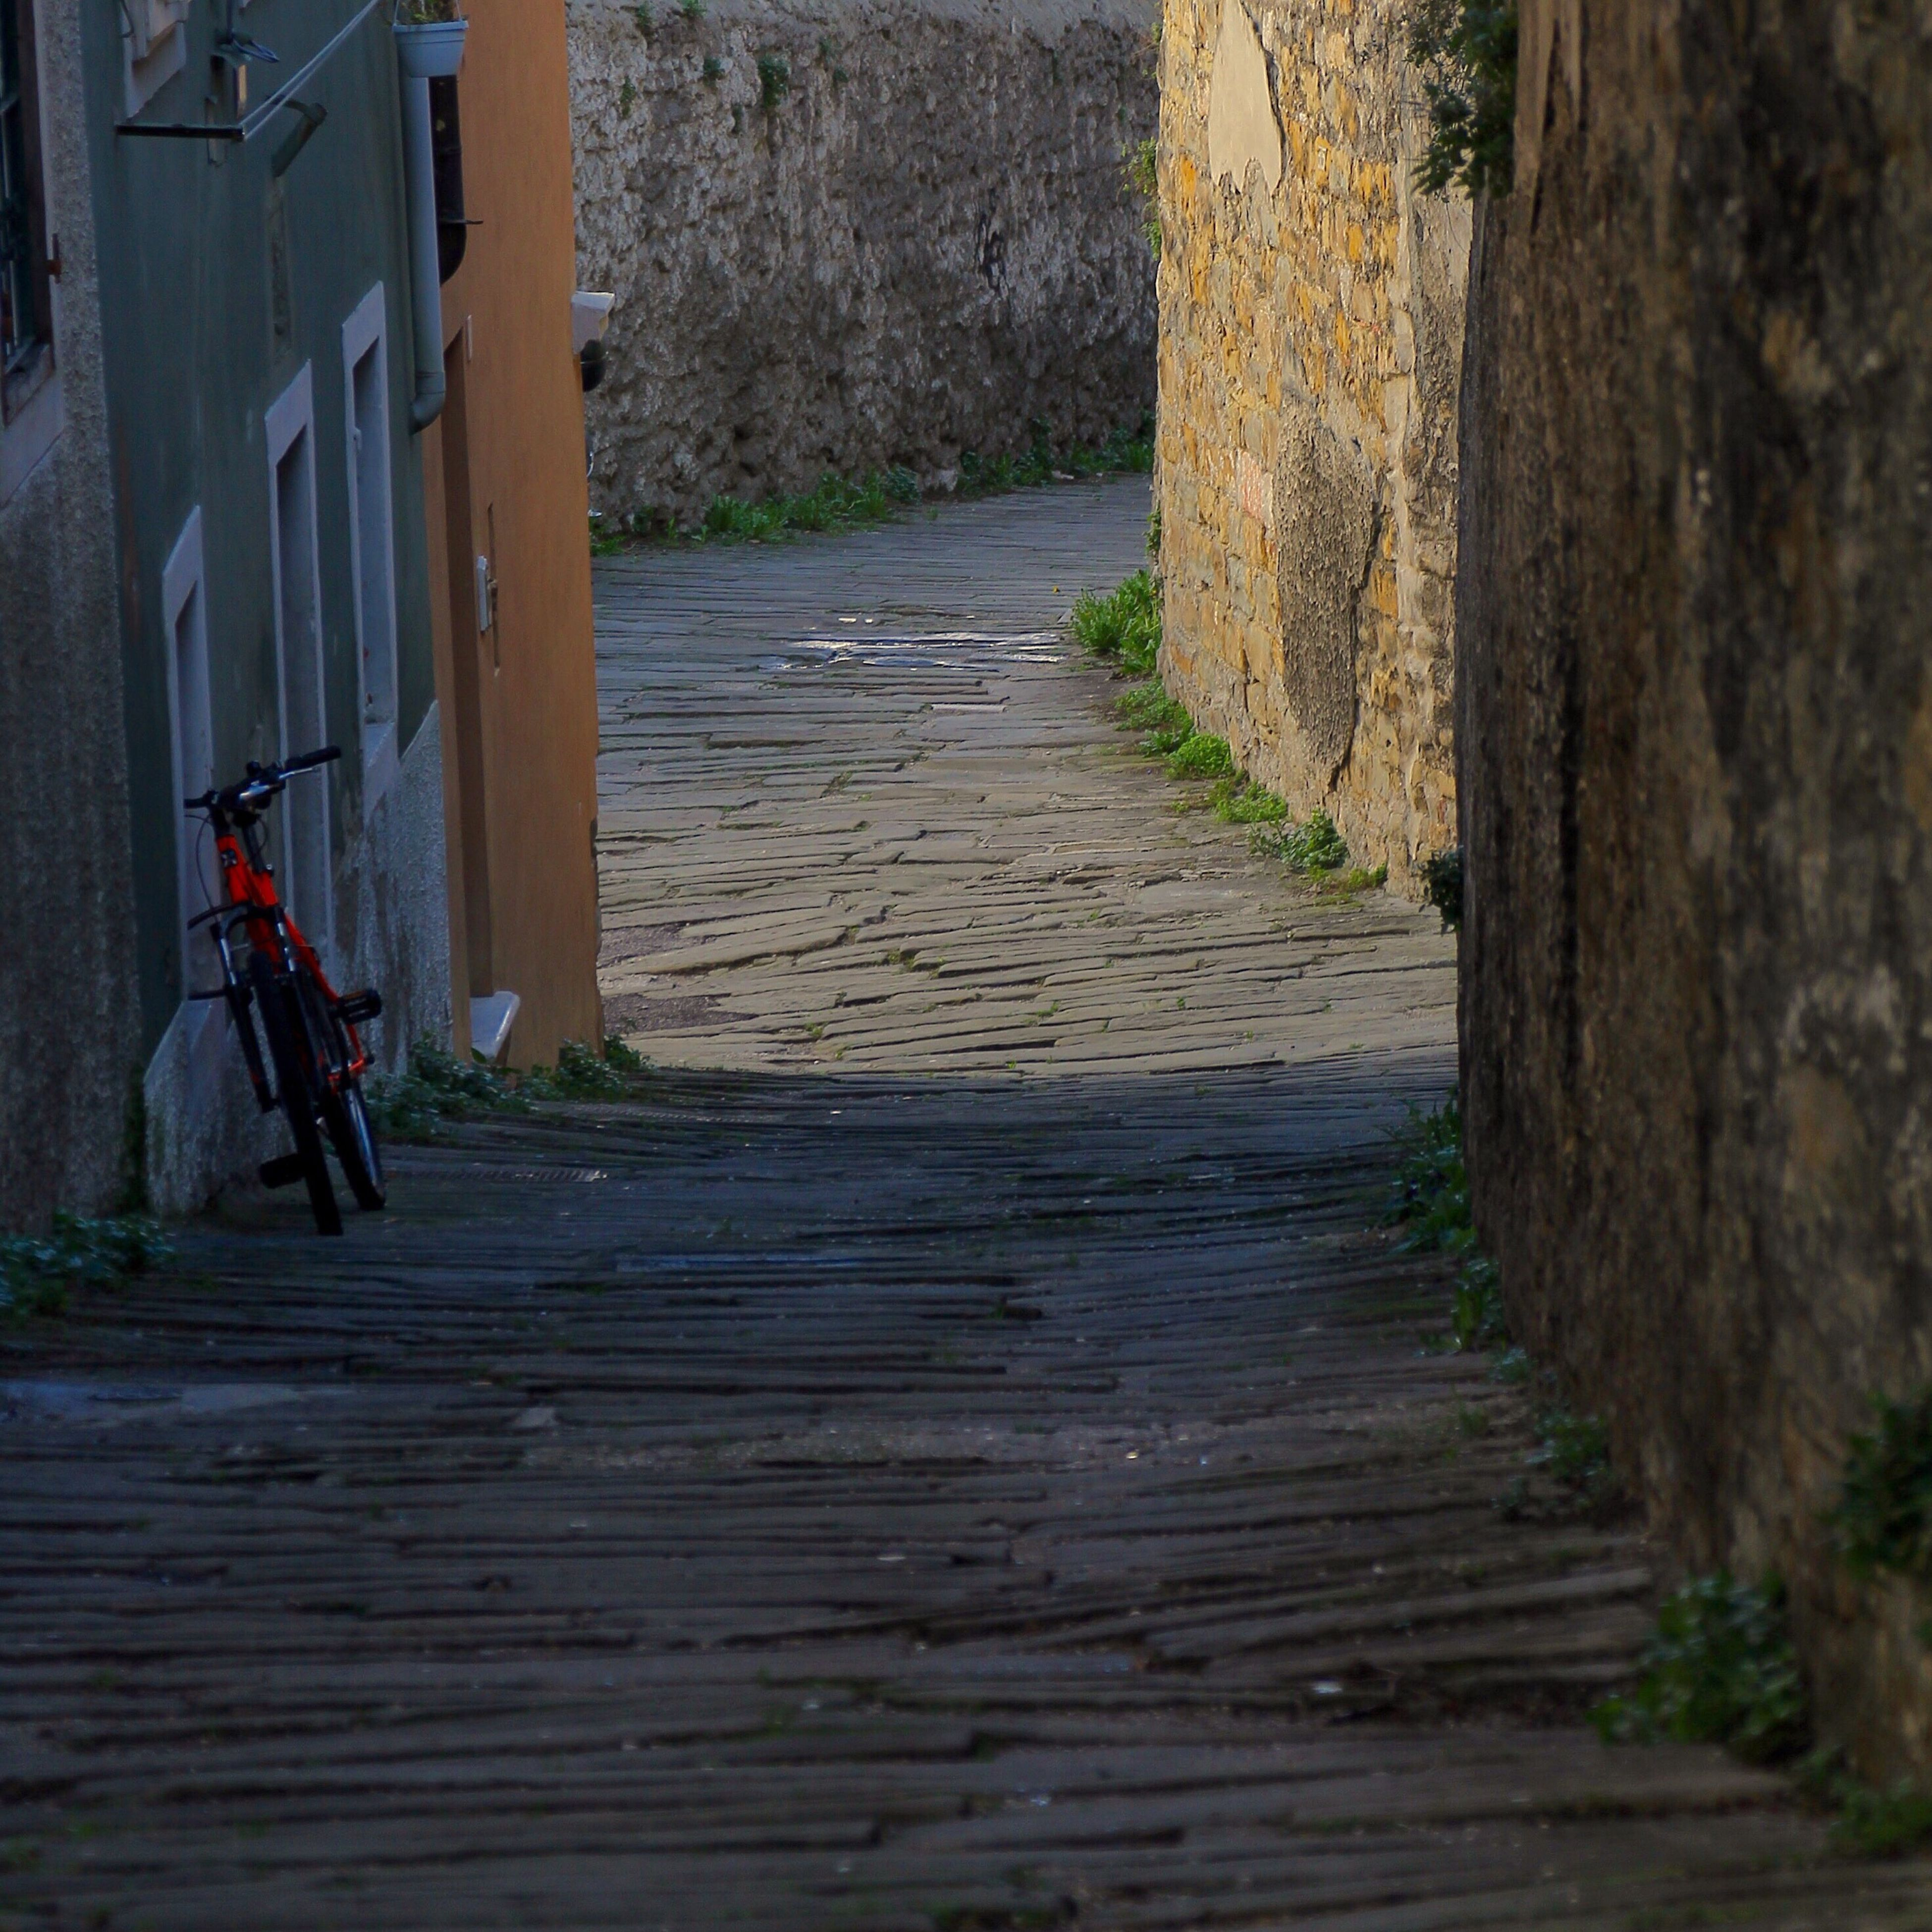 the way forward, architecture, built structure, building exterior, narrow, steps, walkway, walking, pathway, diminishing perspective, footpath, wood - material, wall - building feature, alley, day, street, vanishing point, outdoors